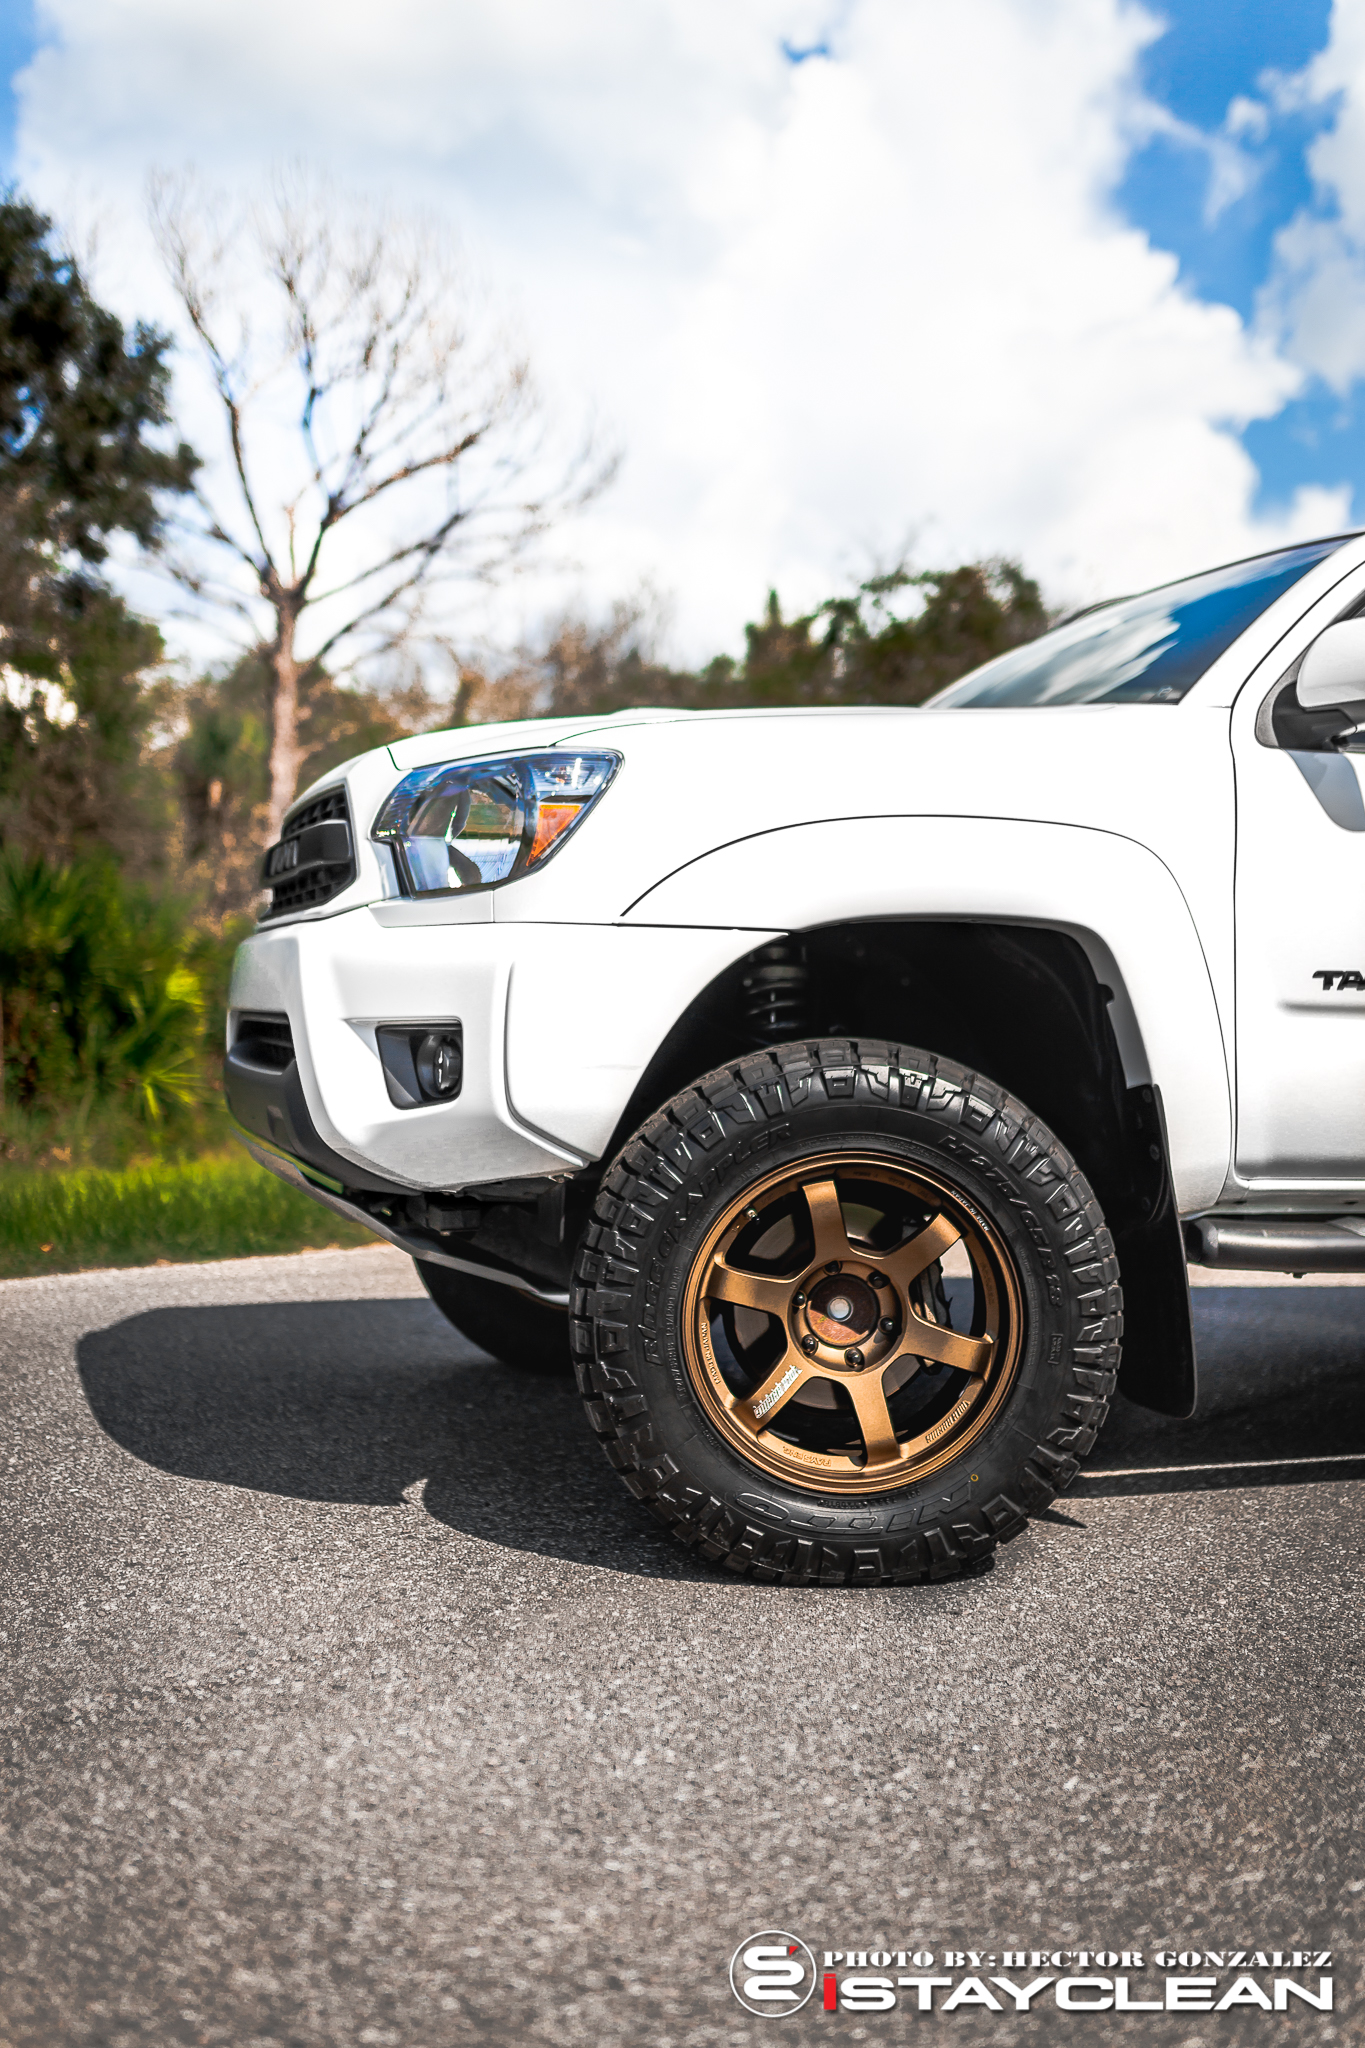 Tacoma + TE37=Awesome! – iStayclean